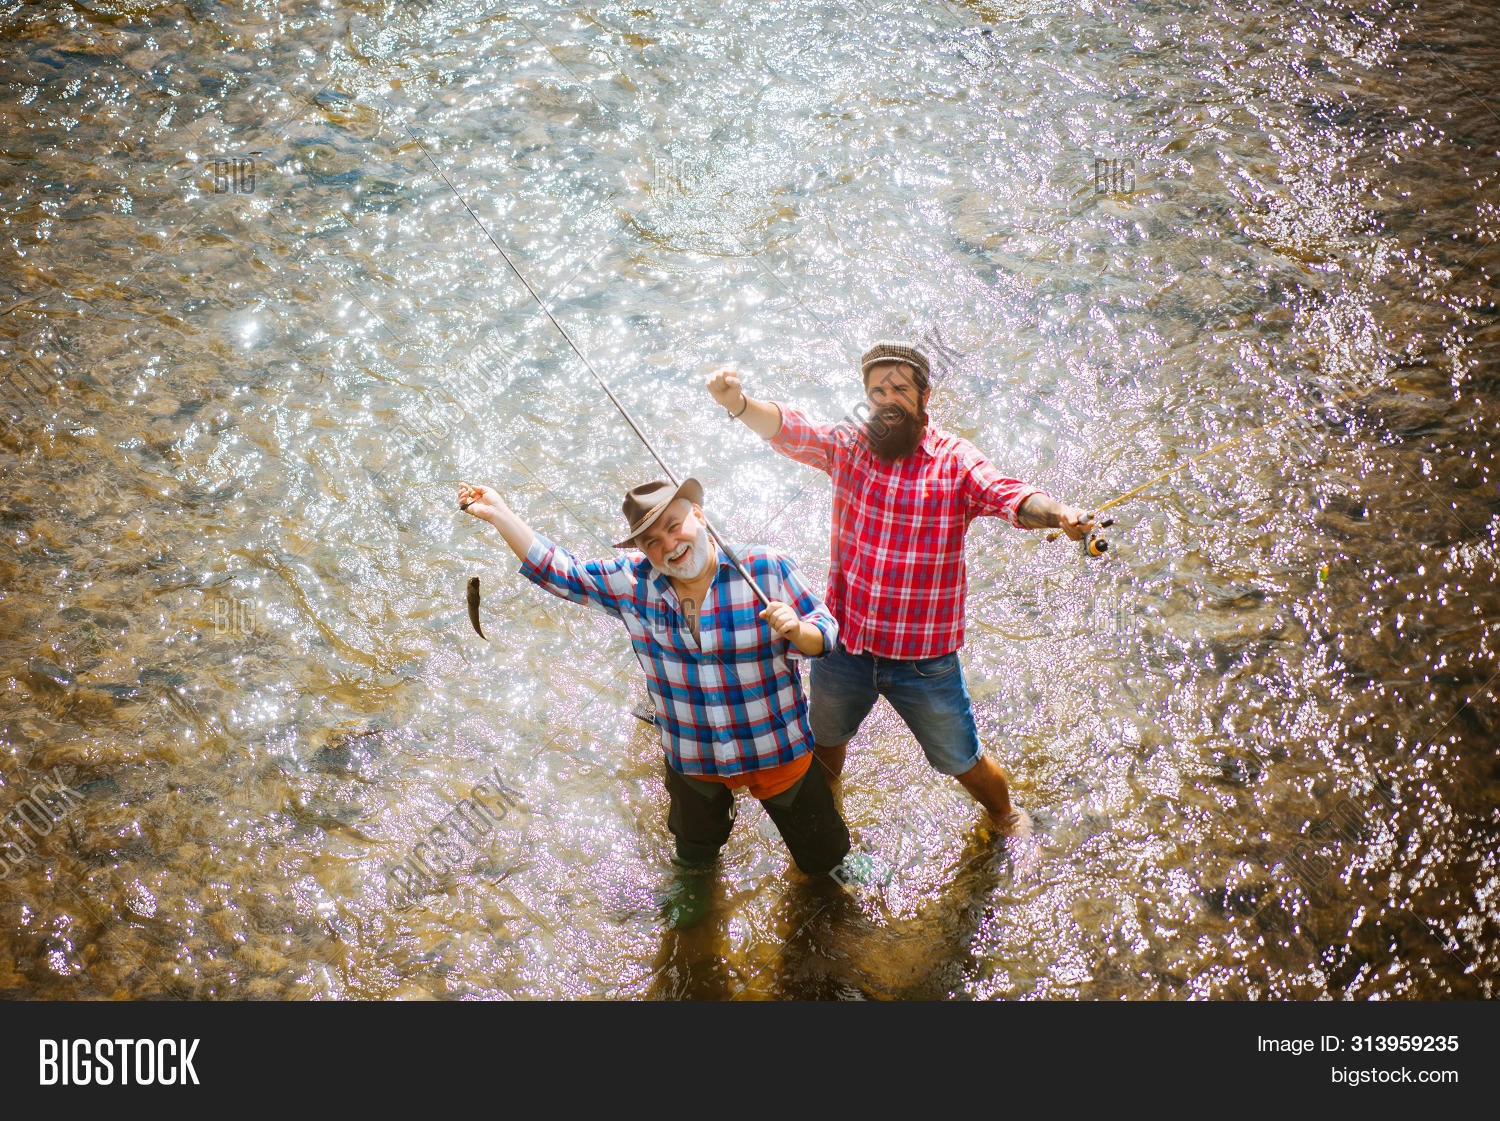 America,American,Canada,USA,activity,aged,angler,angling,bait,brook,brown,catching,countryside,creek,dad,fish-rod,fisher,fisherman,fishermen,fishery,fishing,fishman,fly,fly-fishing,flyfishing,freshwater,grandfather,grandpa,grandson,hat,hoary,hobby,hook,leisure,lure,male,men,net,recreation,reel,river,rod,senior,son,spinner,spinning,stream,trip,trout,wild